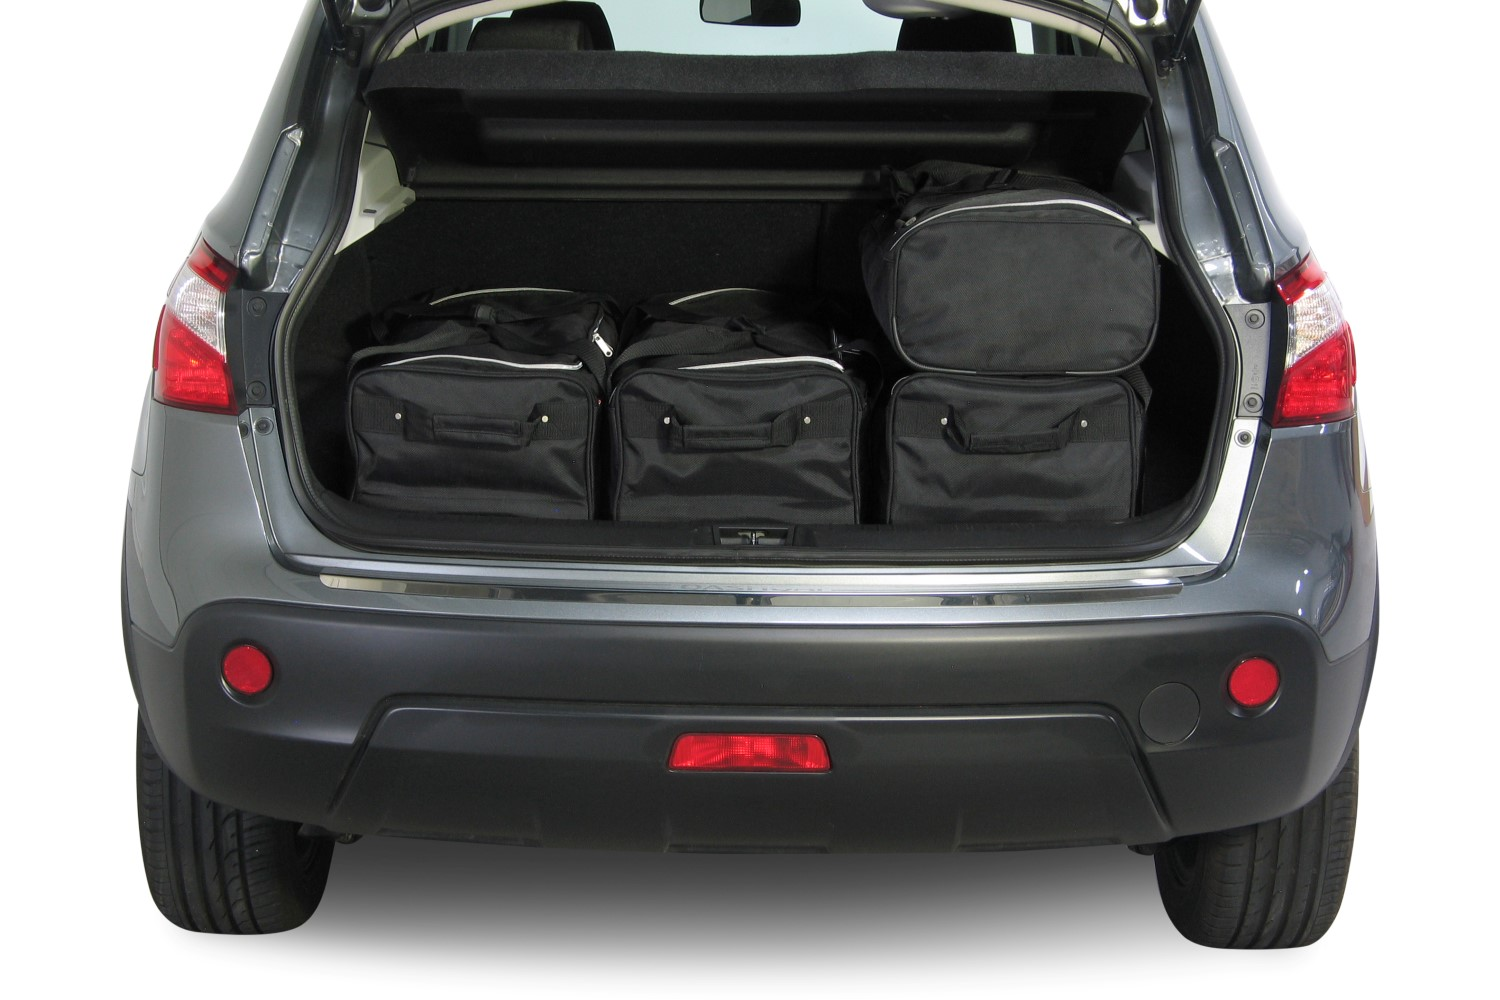 qashqai nissan qashqai j10 2007 2013 car bags travel bags. Black Bedroom Furniture Sets. Home Design Ideas